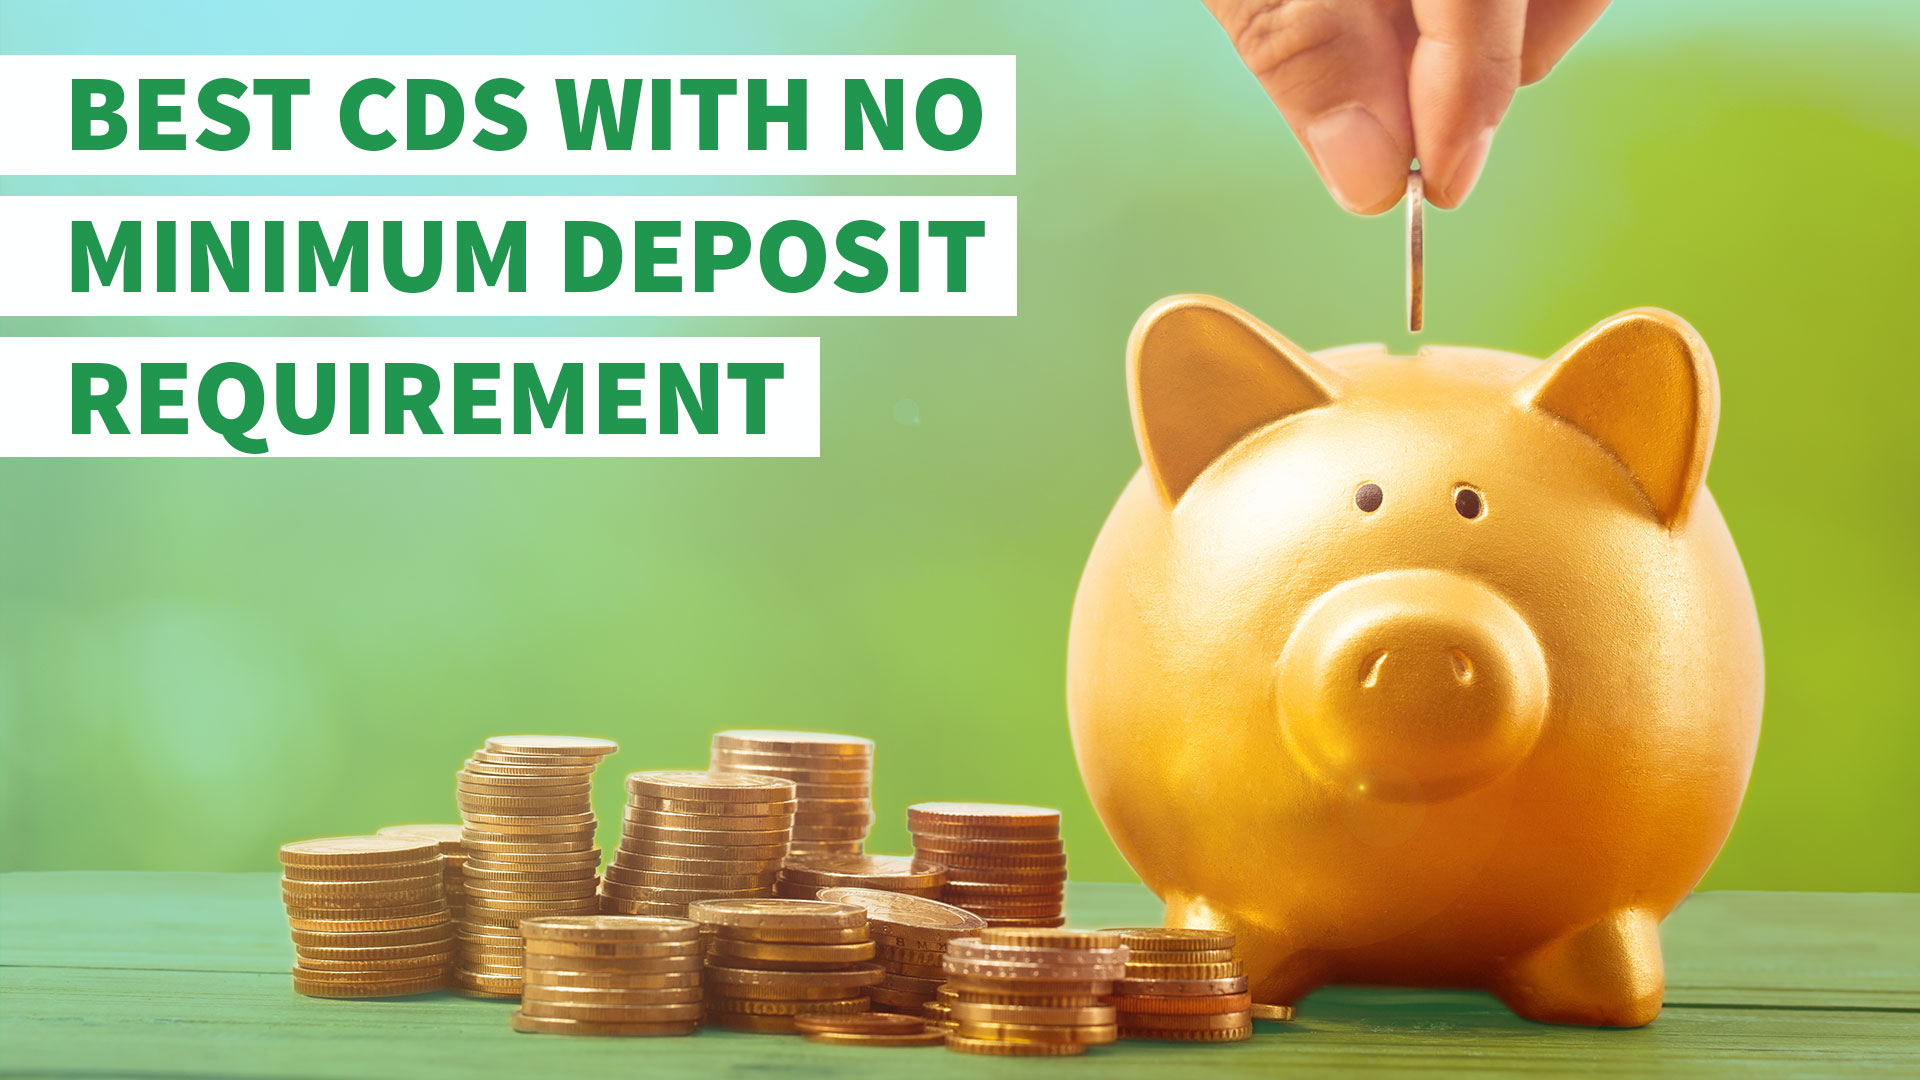 No Minimum Deposit